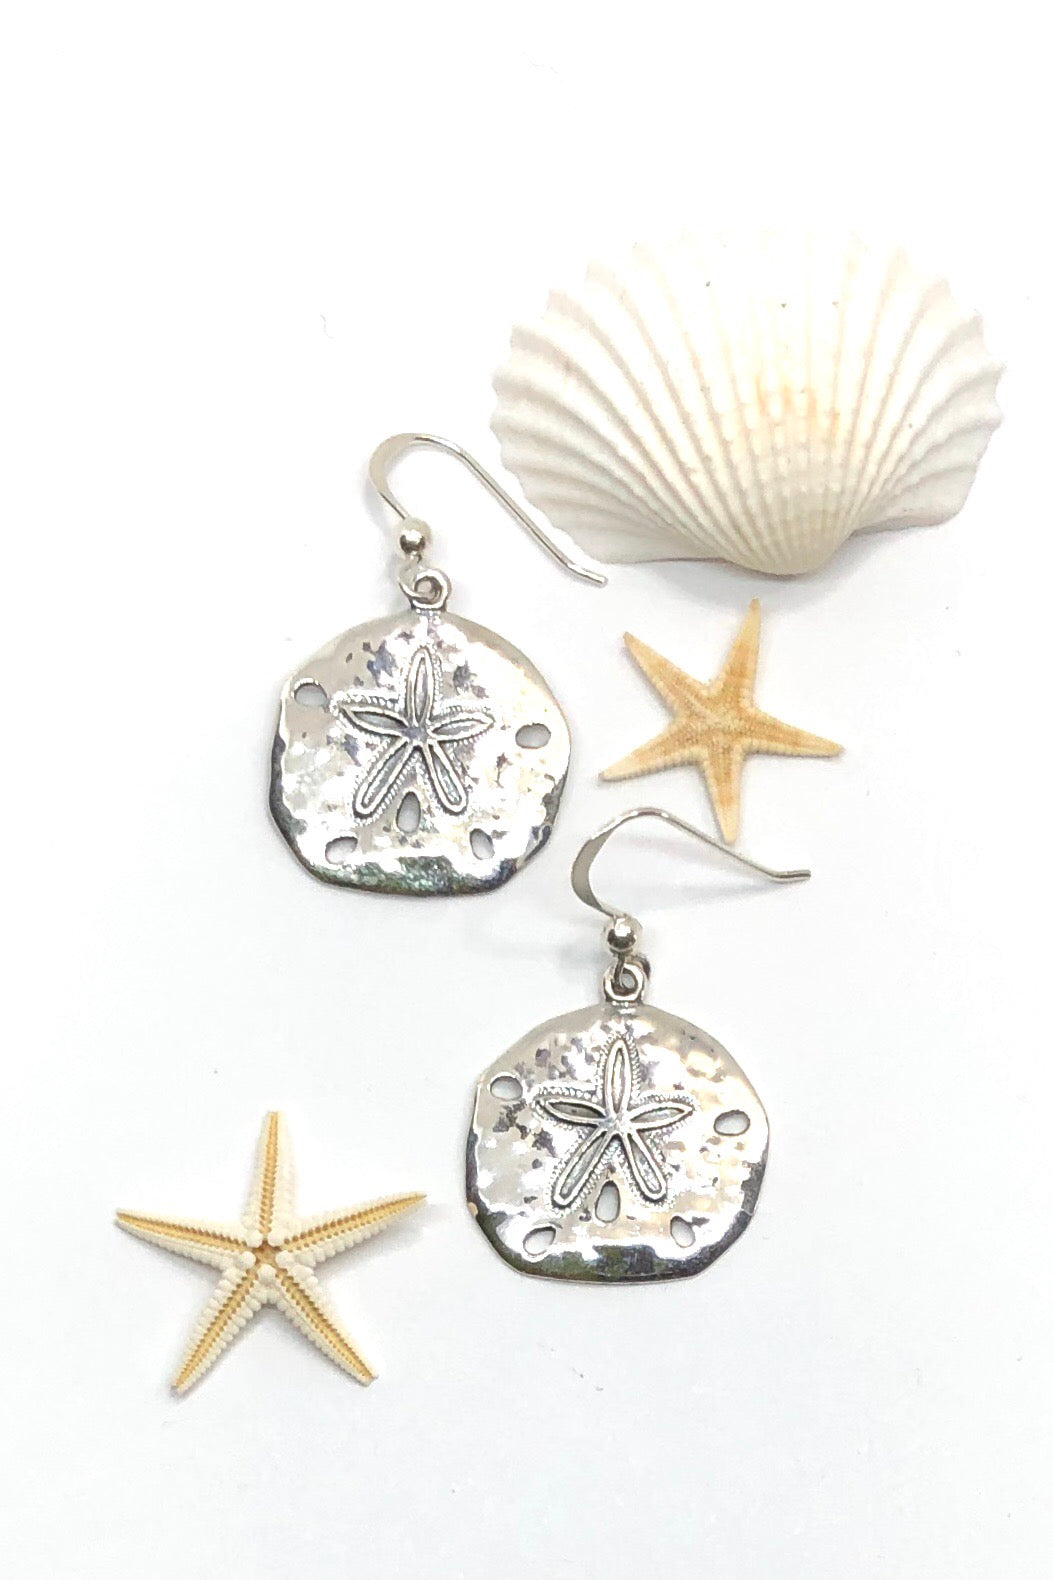 silver earrings in the shape of a tiny sea urchin are perfect for everyday wear